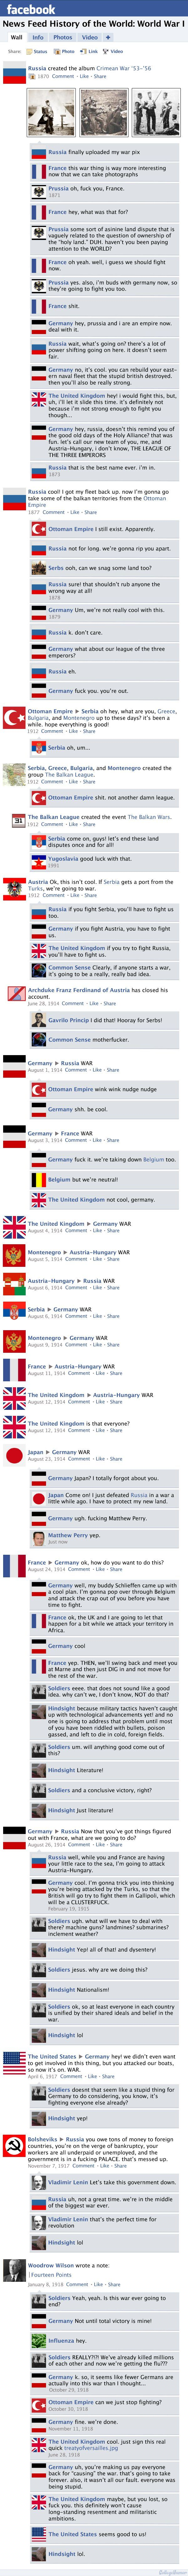 Here's What WWII Would Look like as a Facebook News Feed - CollegeHumor Post